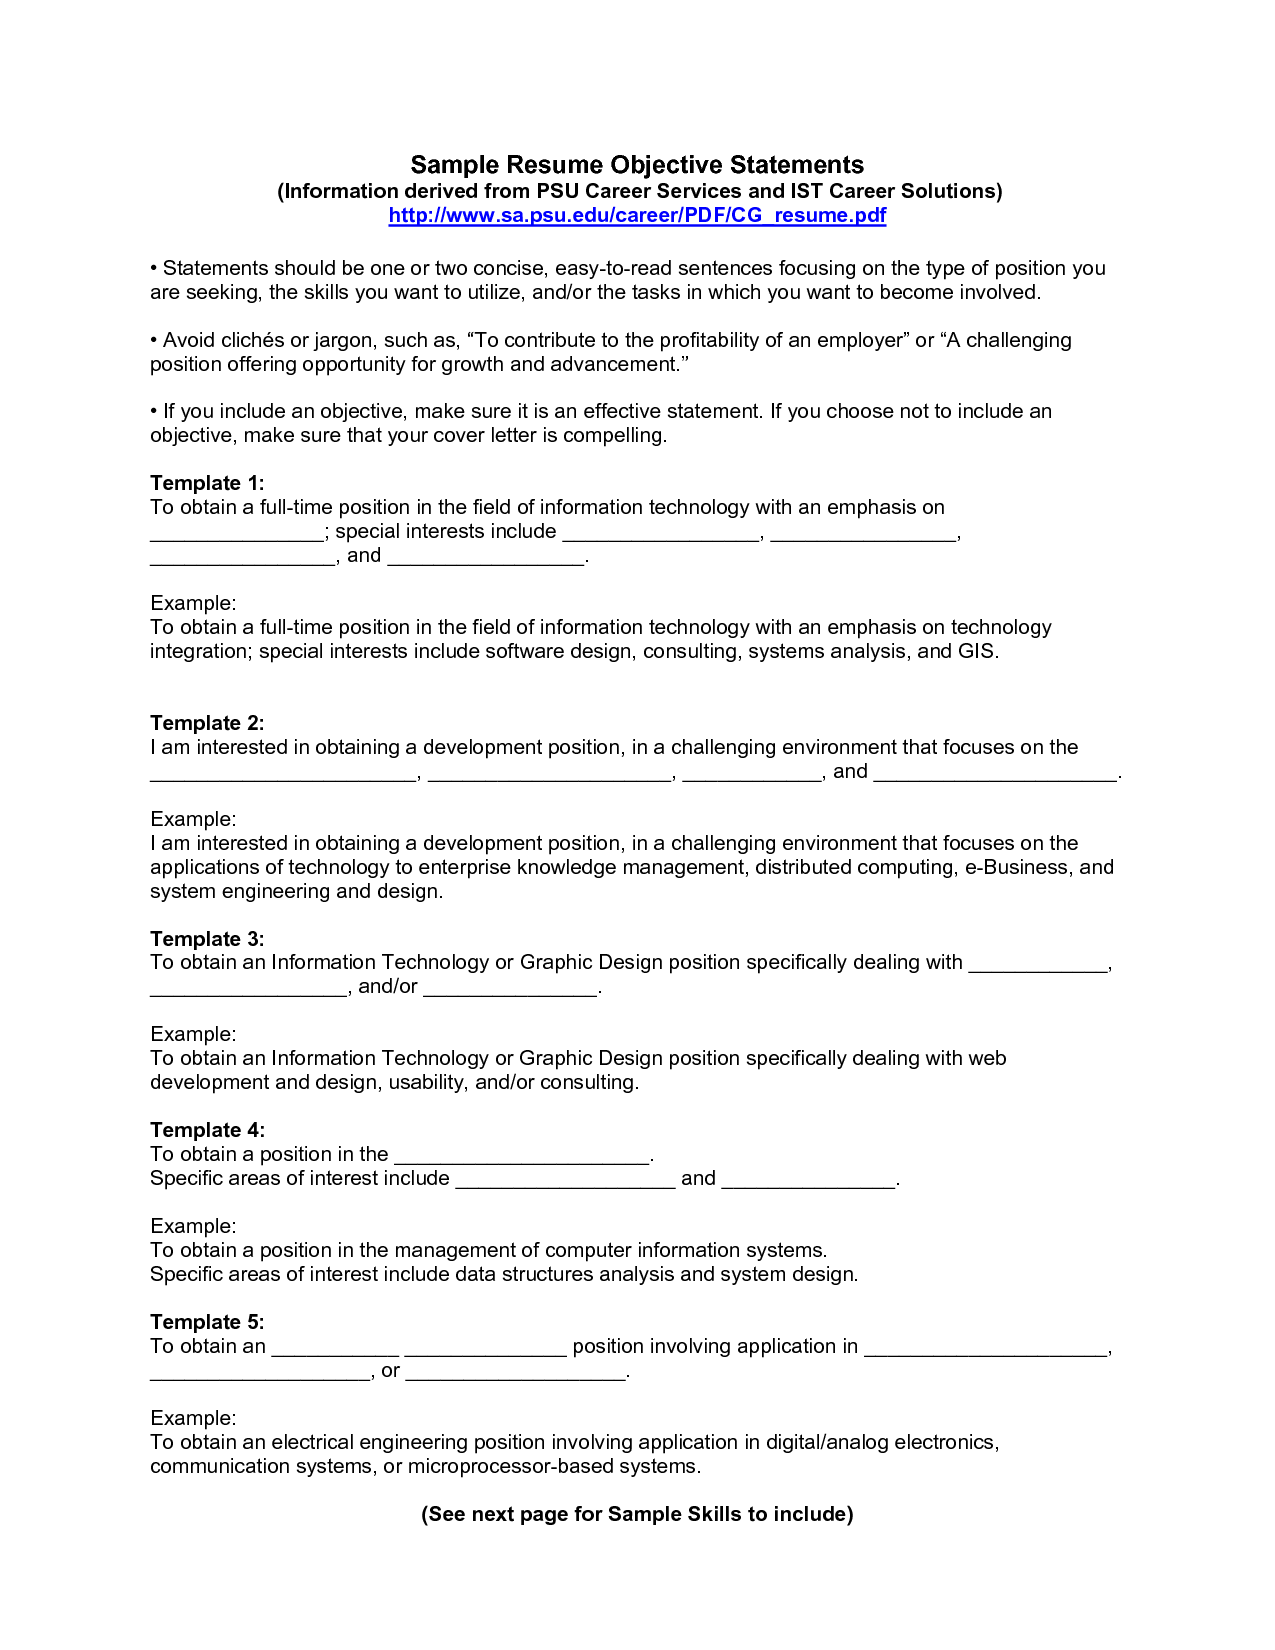 Examples Of Skills For Resume Beauteous Resume Objective Statement For Teacher  Httpwww.resumecareer .